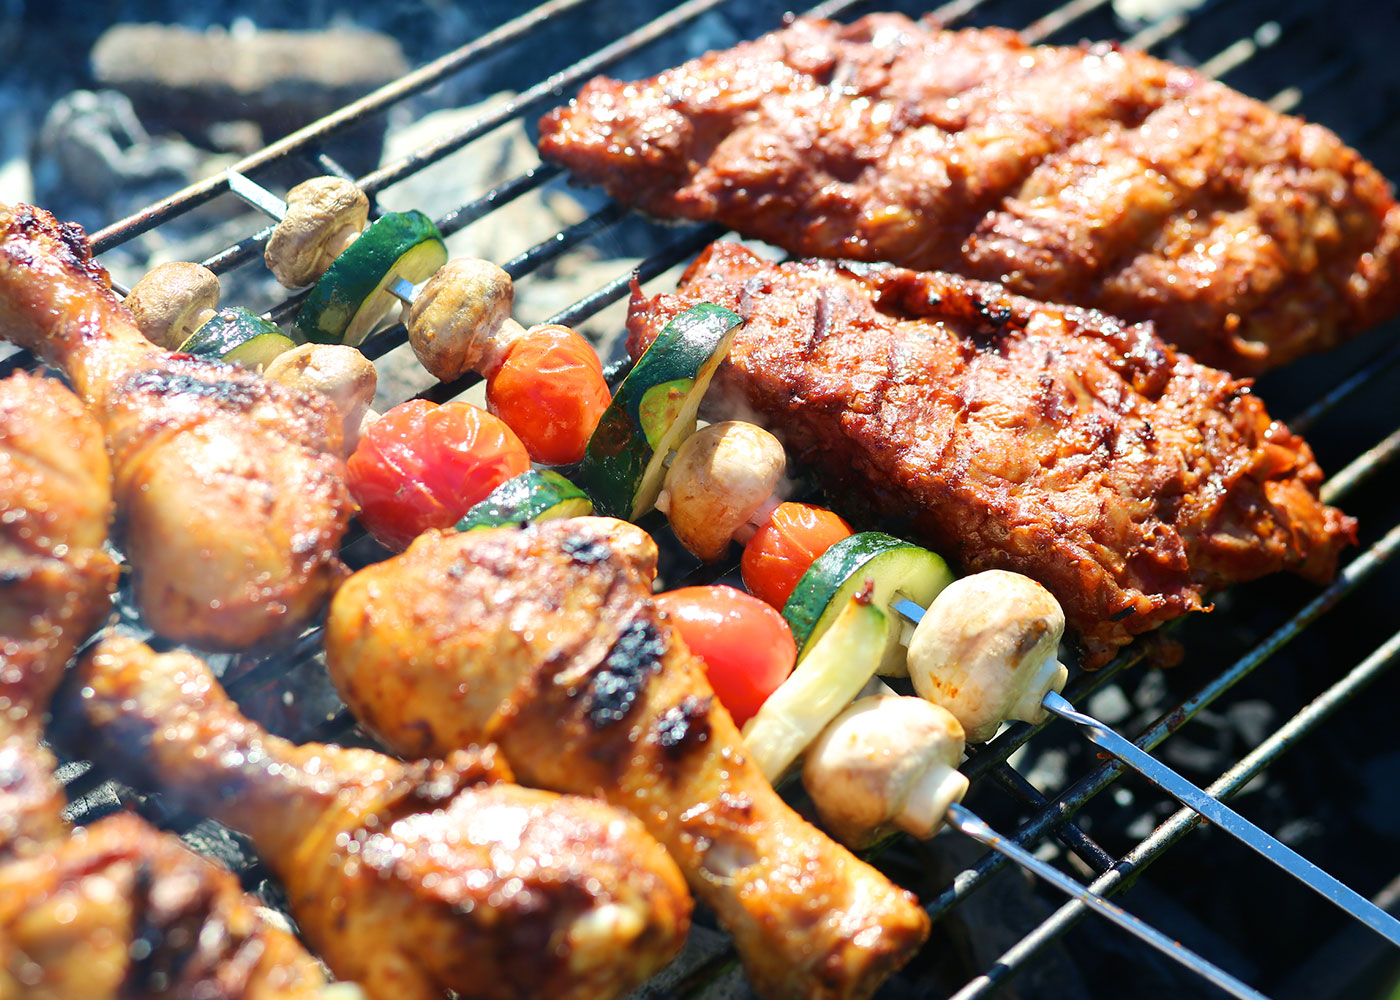 Barbecue arrangement